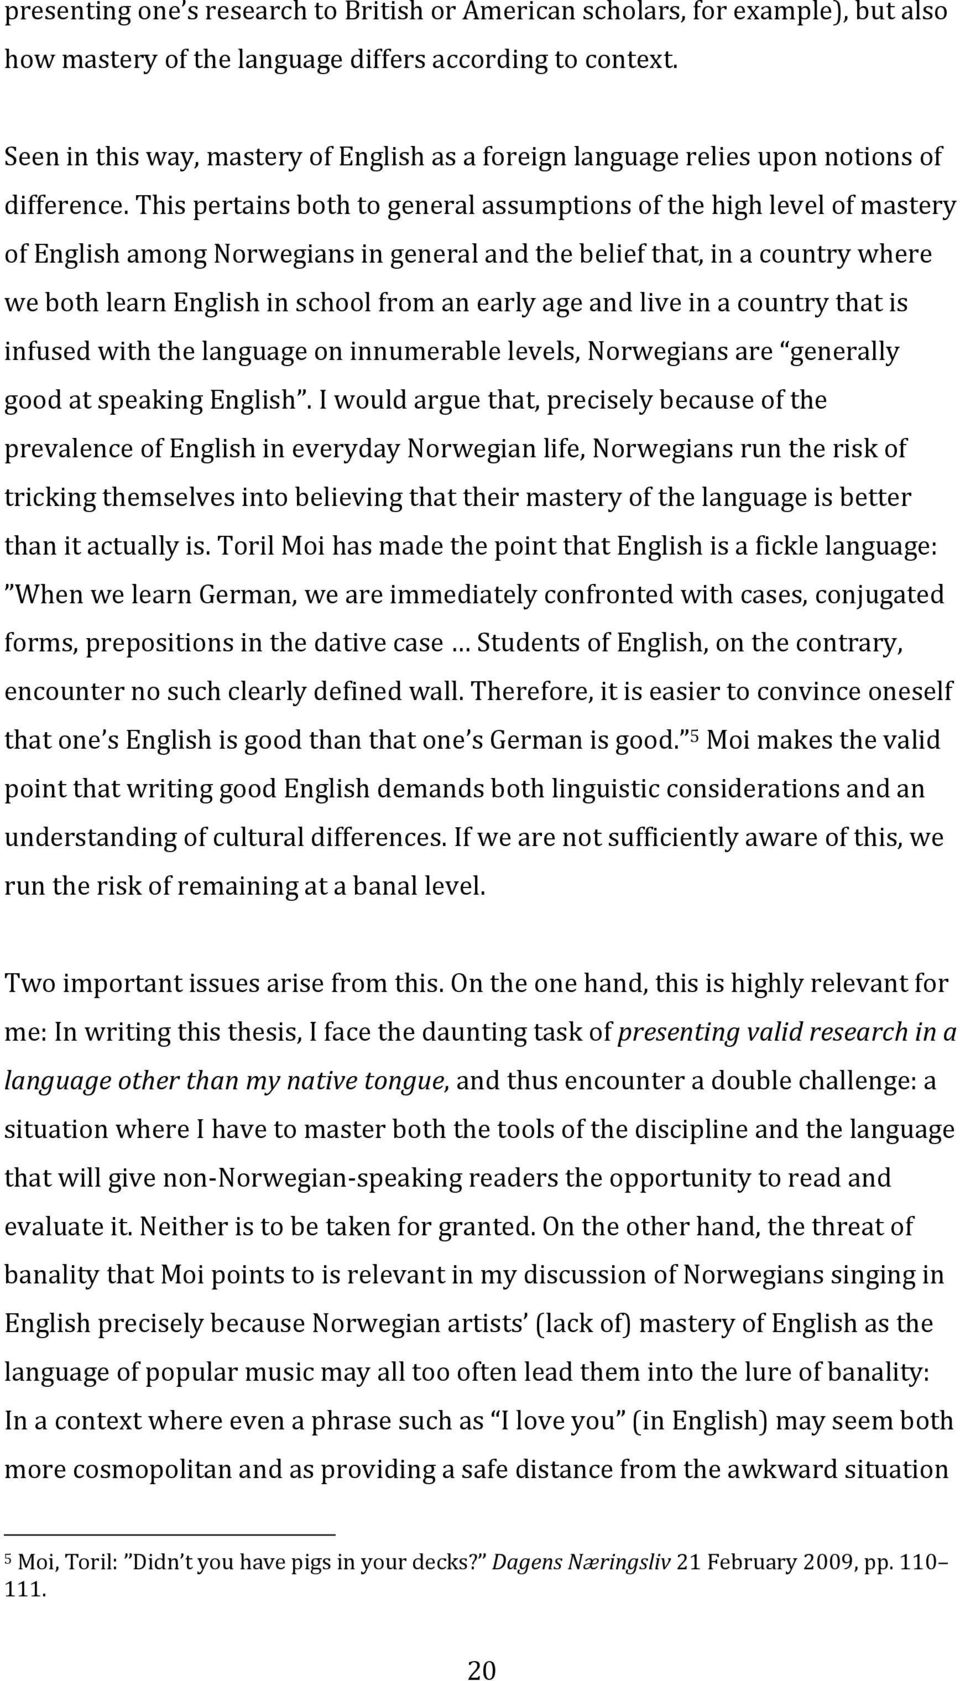 This pertains both to general assumptions of the high level of mastery of English among Norwegians in general and the belief that, in a country where we both learn English in school from an early age